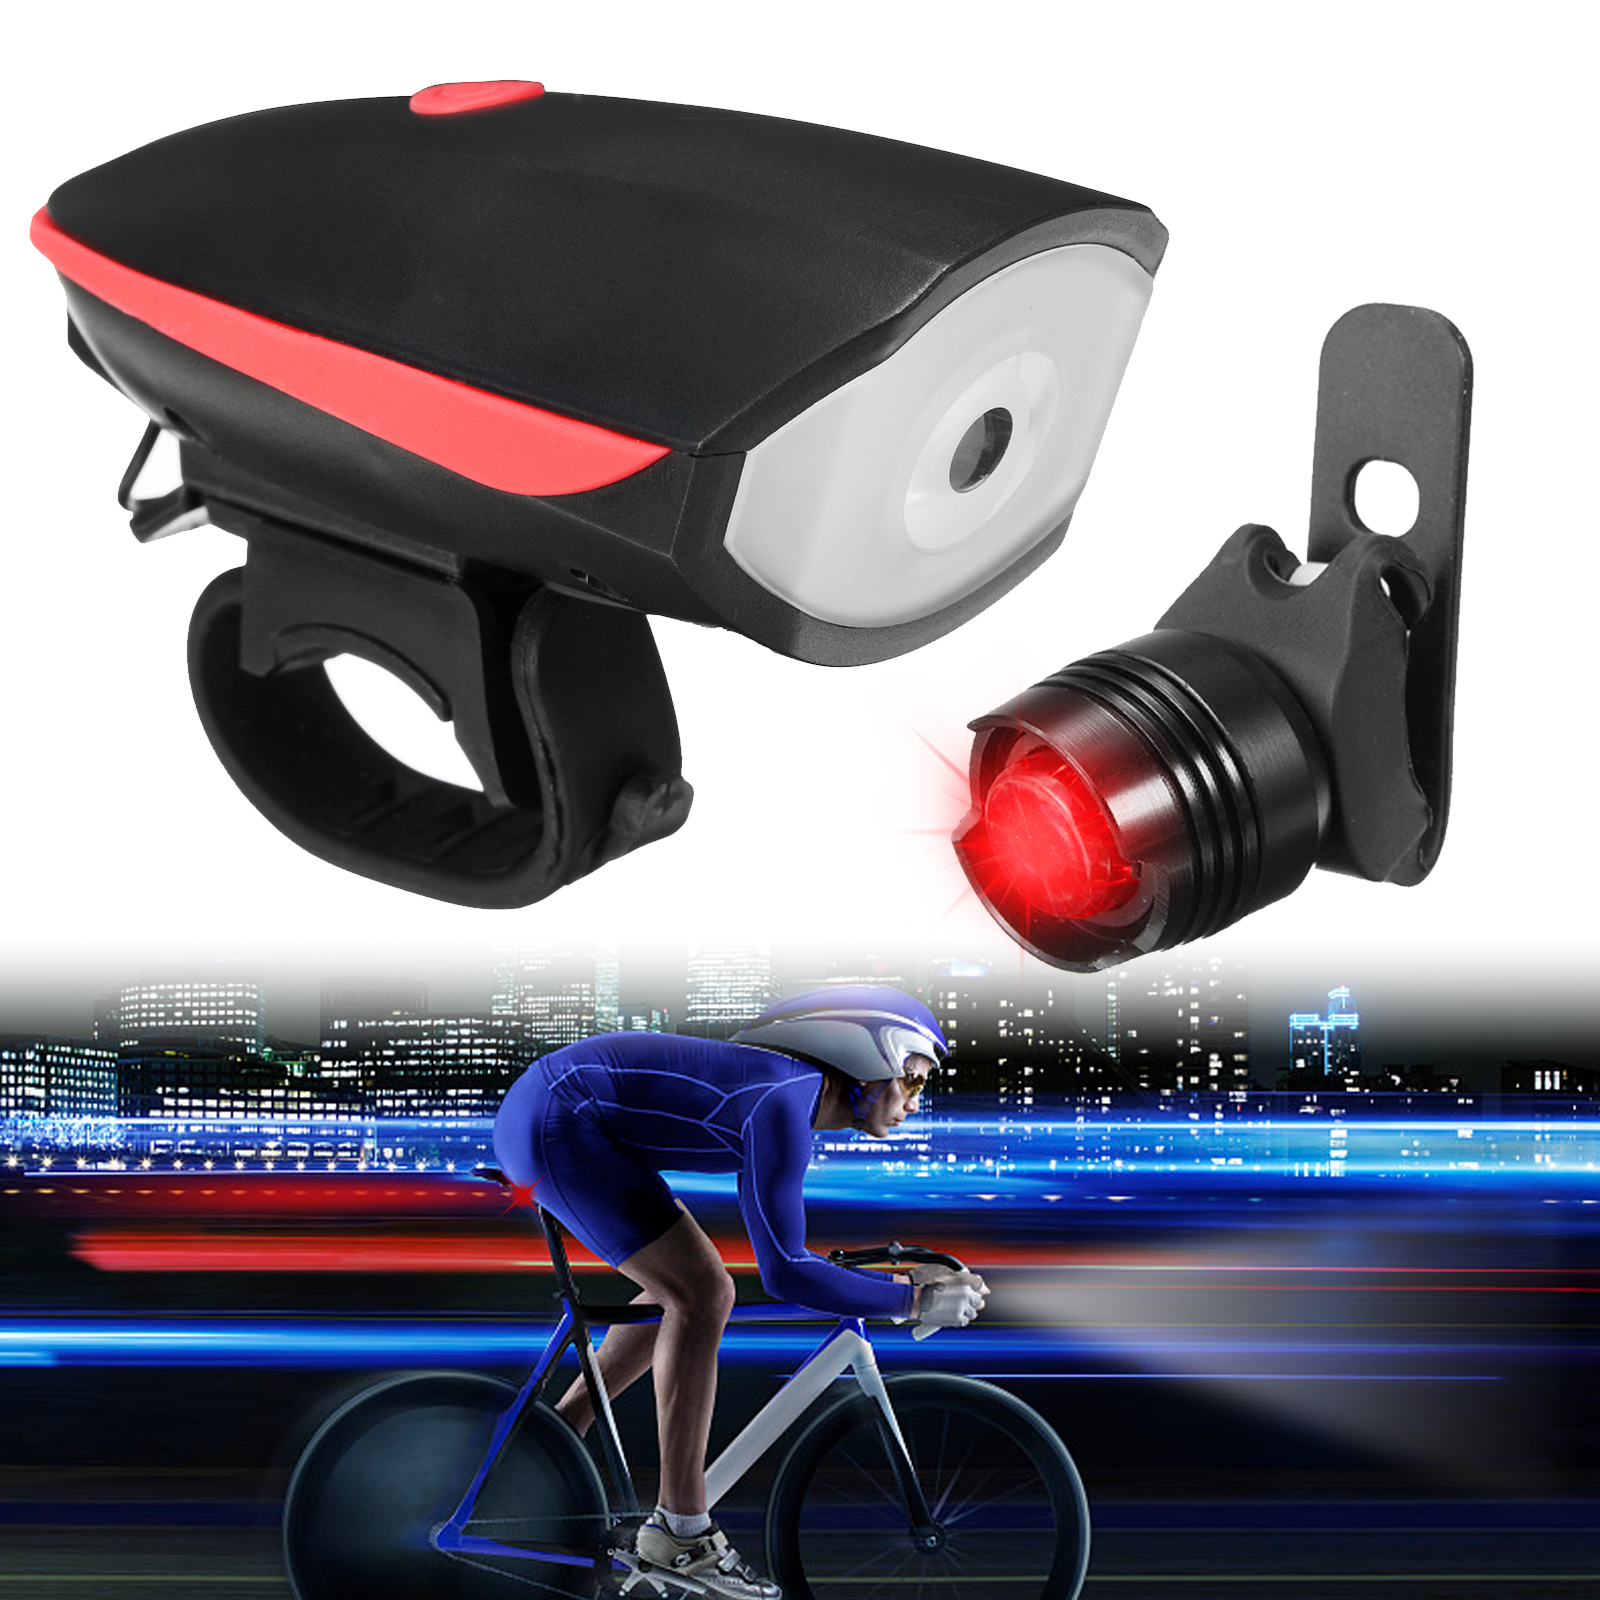 Bike Headlight Taillight Set, EEEKit Waterproof USB Rechargeable Super Bright Bike Light Head & Tail Light Set, Black & Red